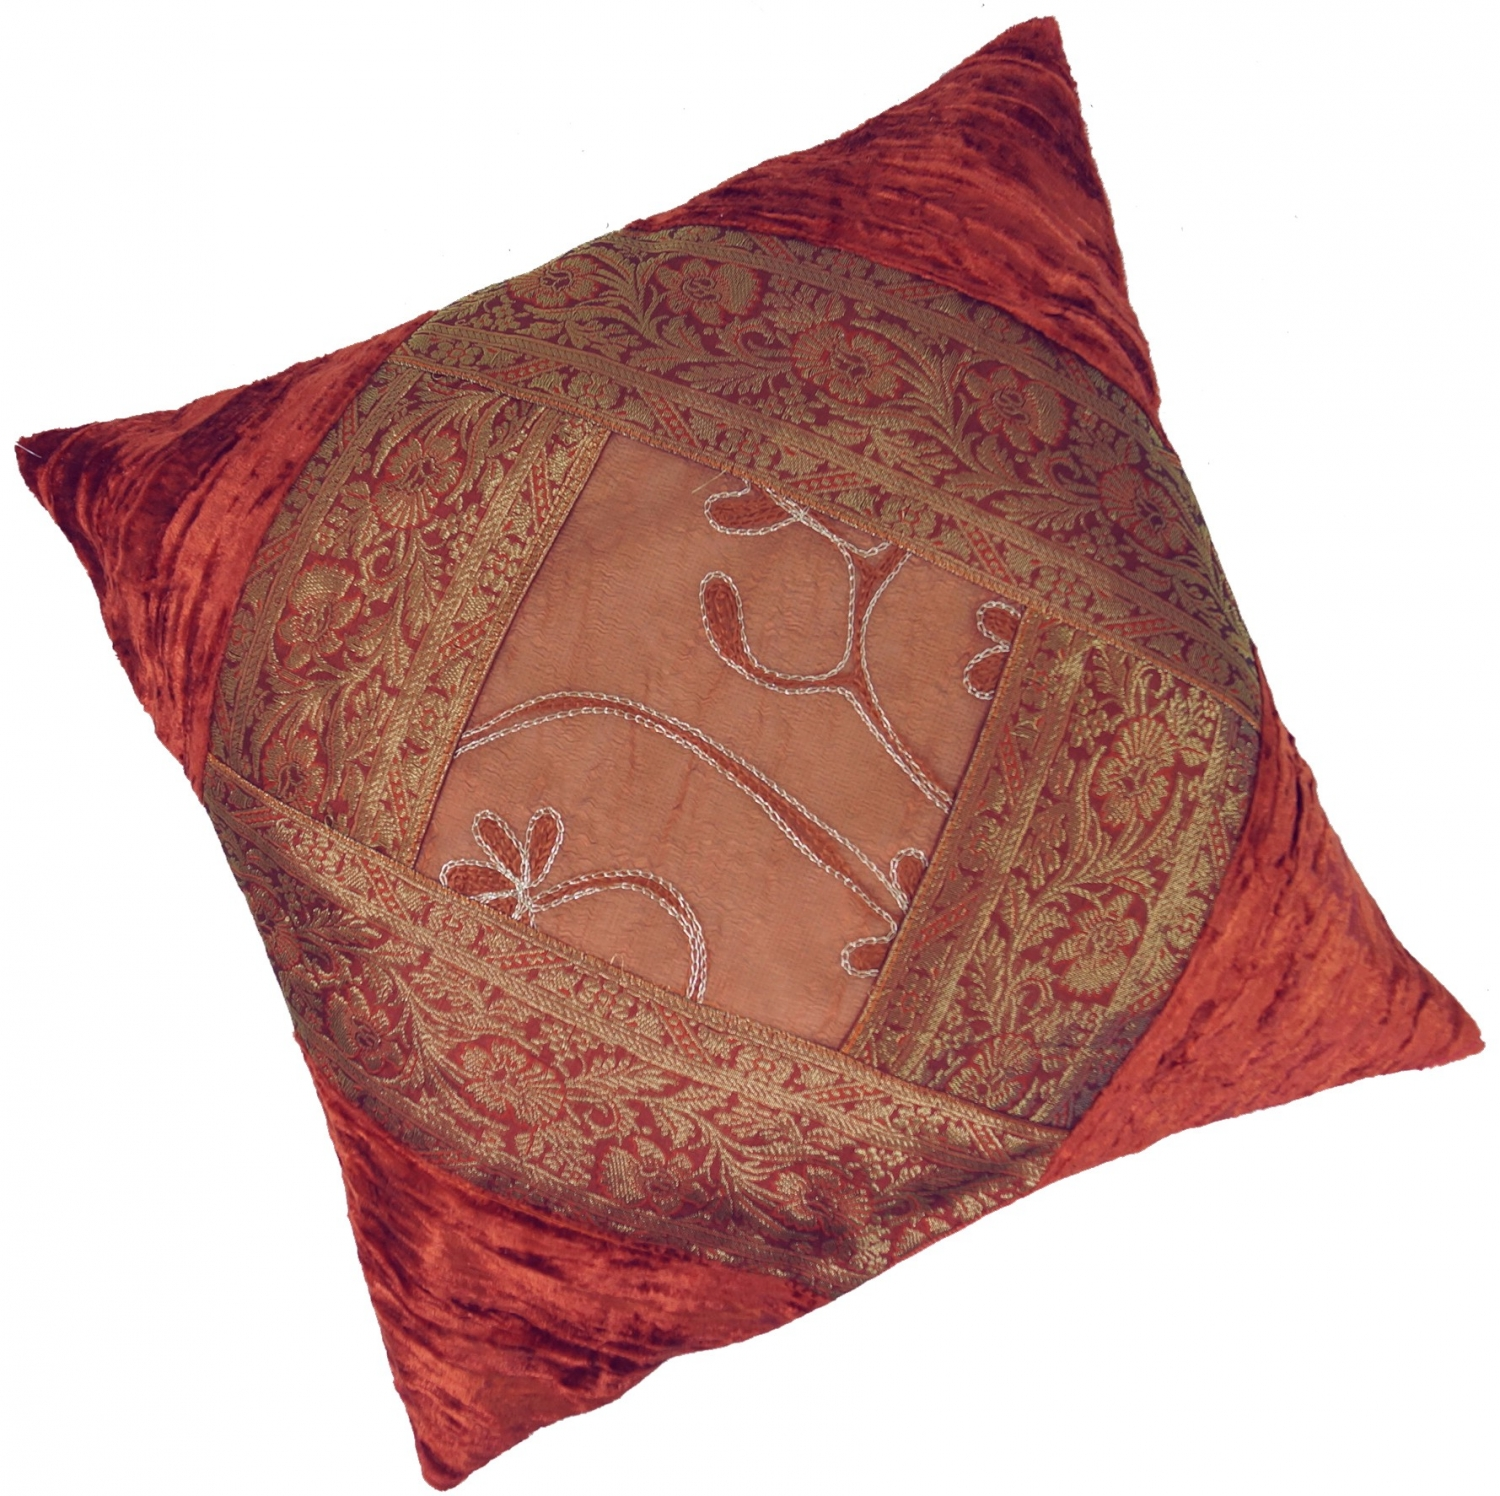 Kissen Orange Oriental Velvet Brocade Cushion Cover Cushion Cover Decorative Cushion 40 40 Cm Rust Orange